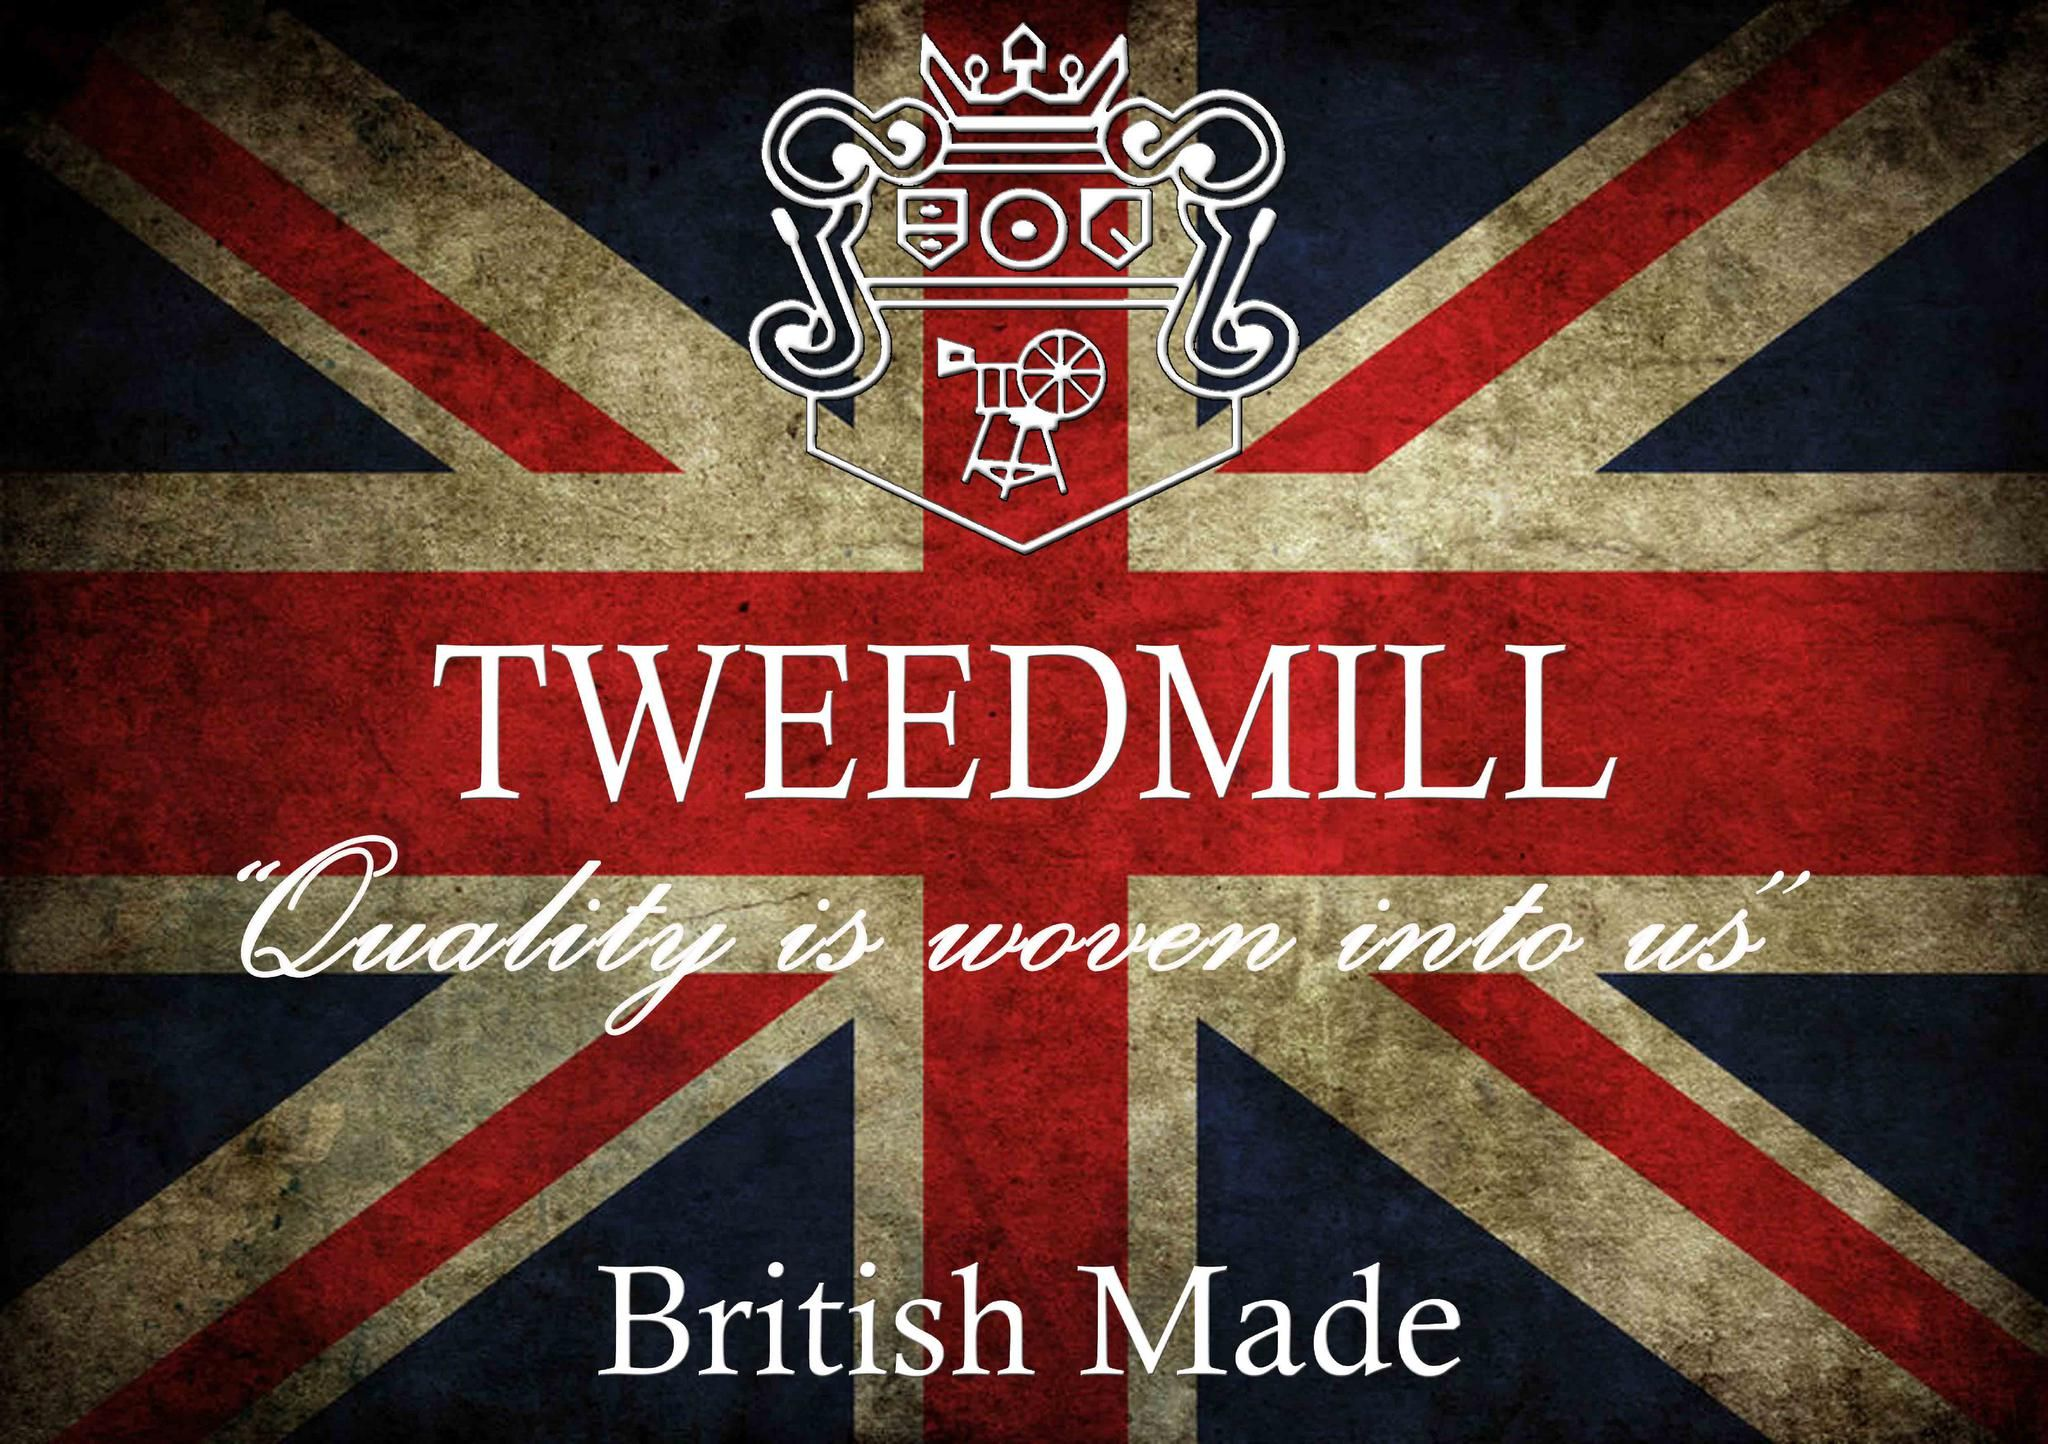 Tweedmill Textiles Ltd